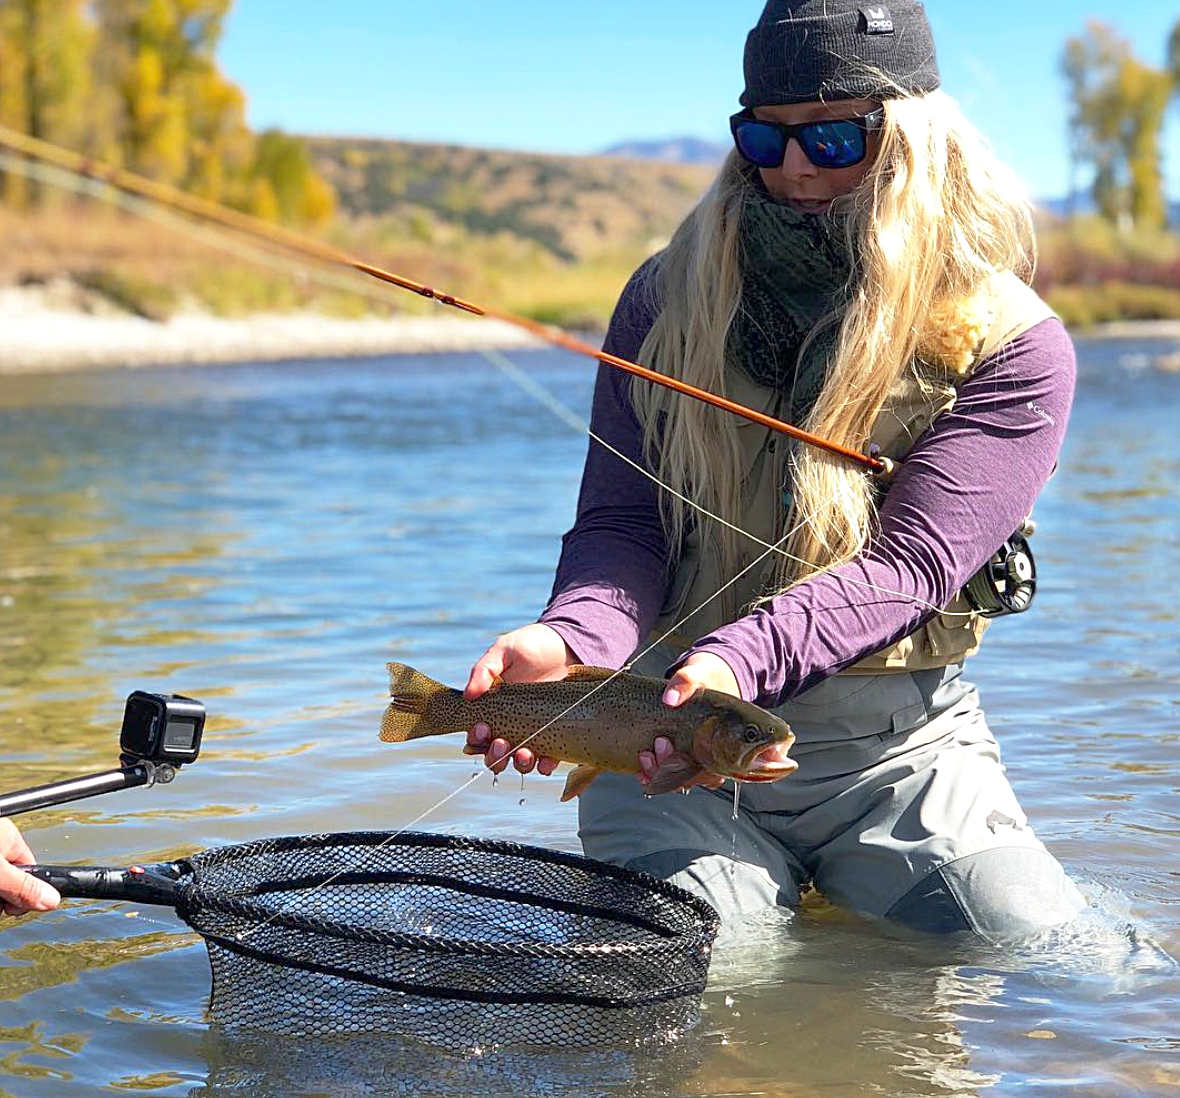 Haley Miller on the South Fork of the Snake River, Idaho with a beautiful cutthroat trout.